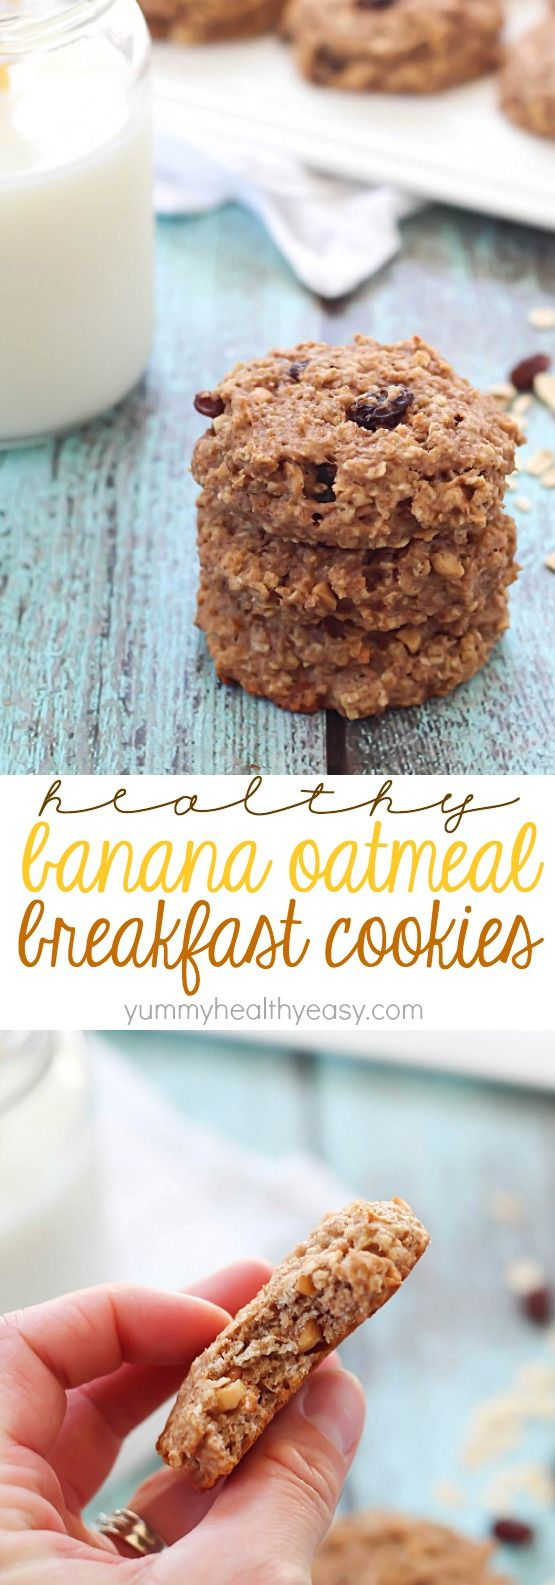 These Healthy Banana Oatmeal Breakfast Cookies are SO easy to make, have no butter or oil, and have only 165 calories in each